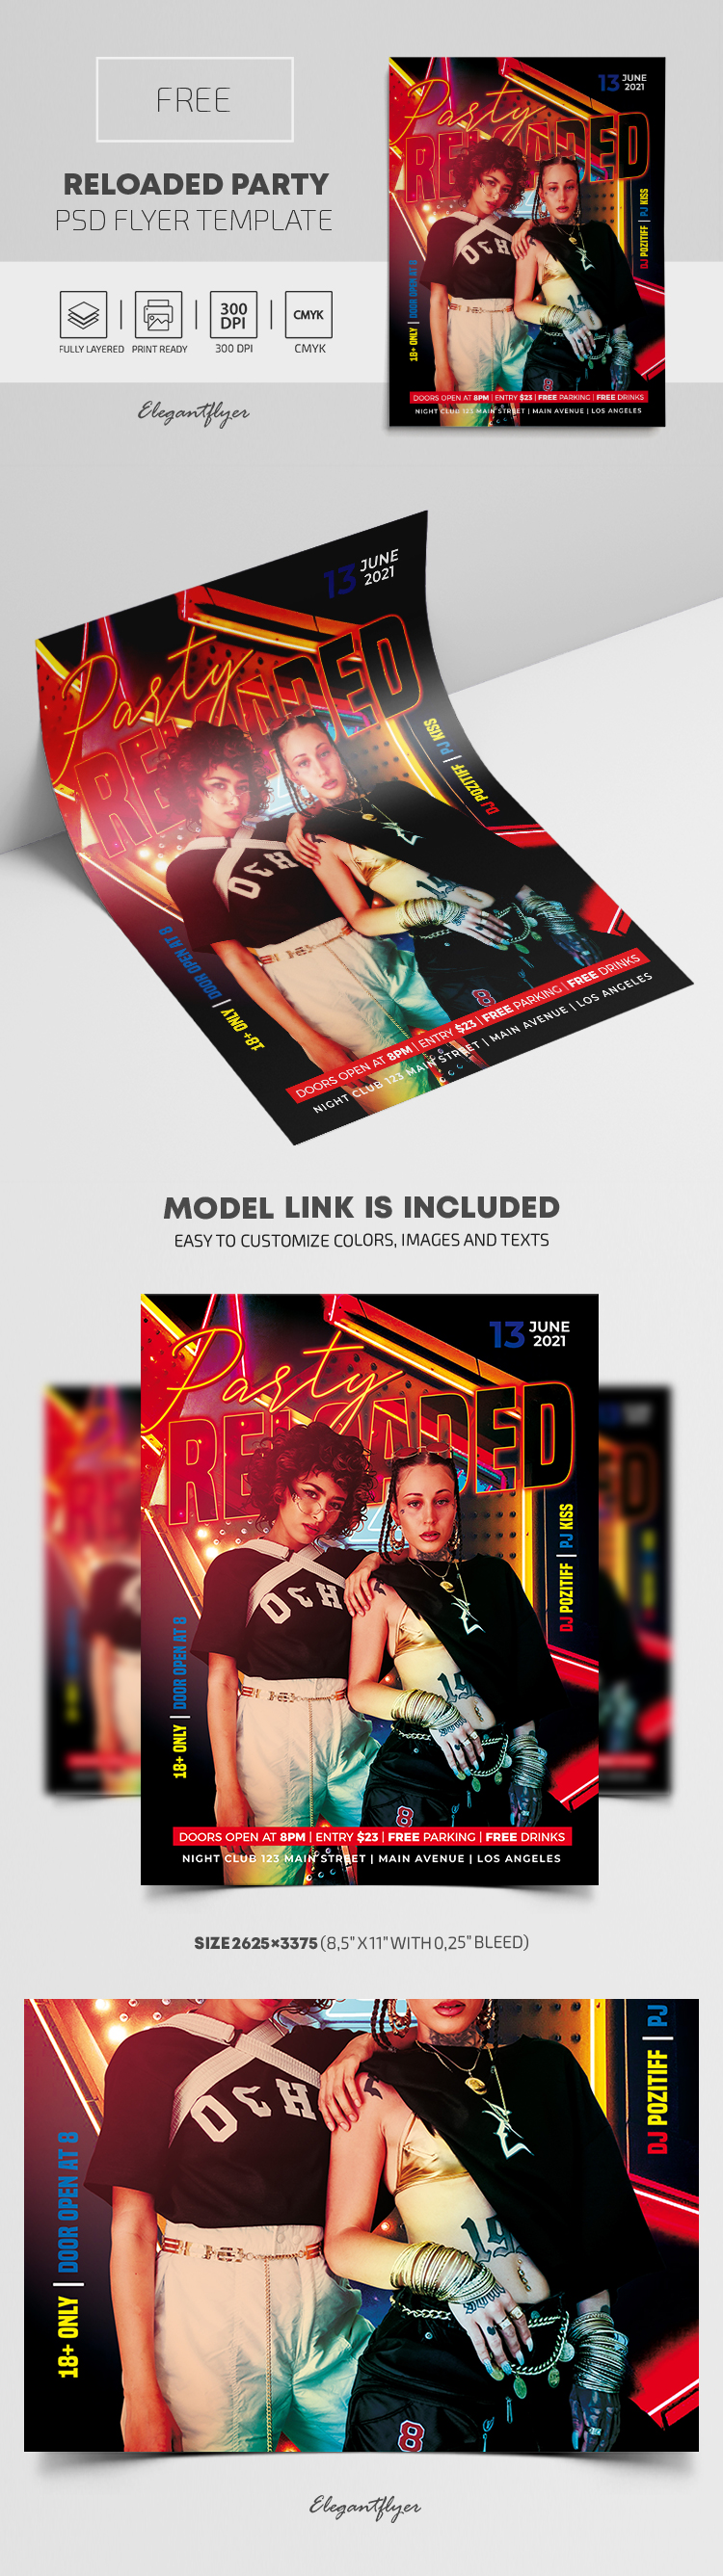 Reloaded Party – Free Flyer PSD Template